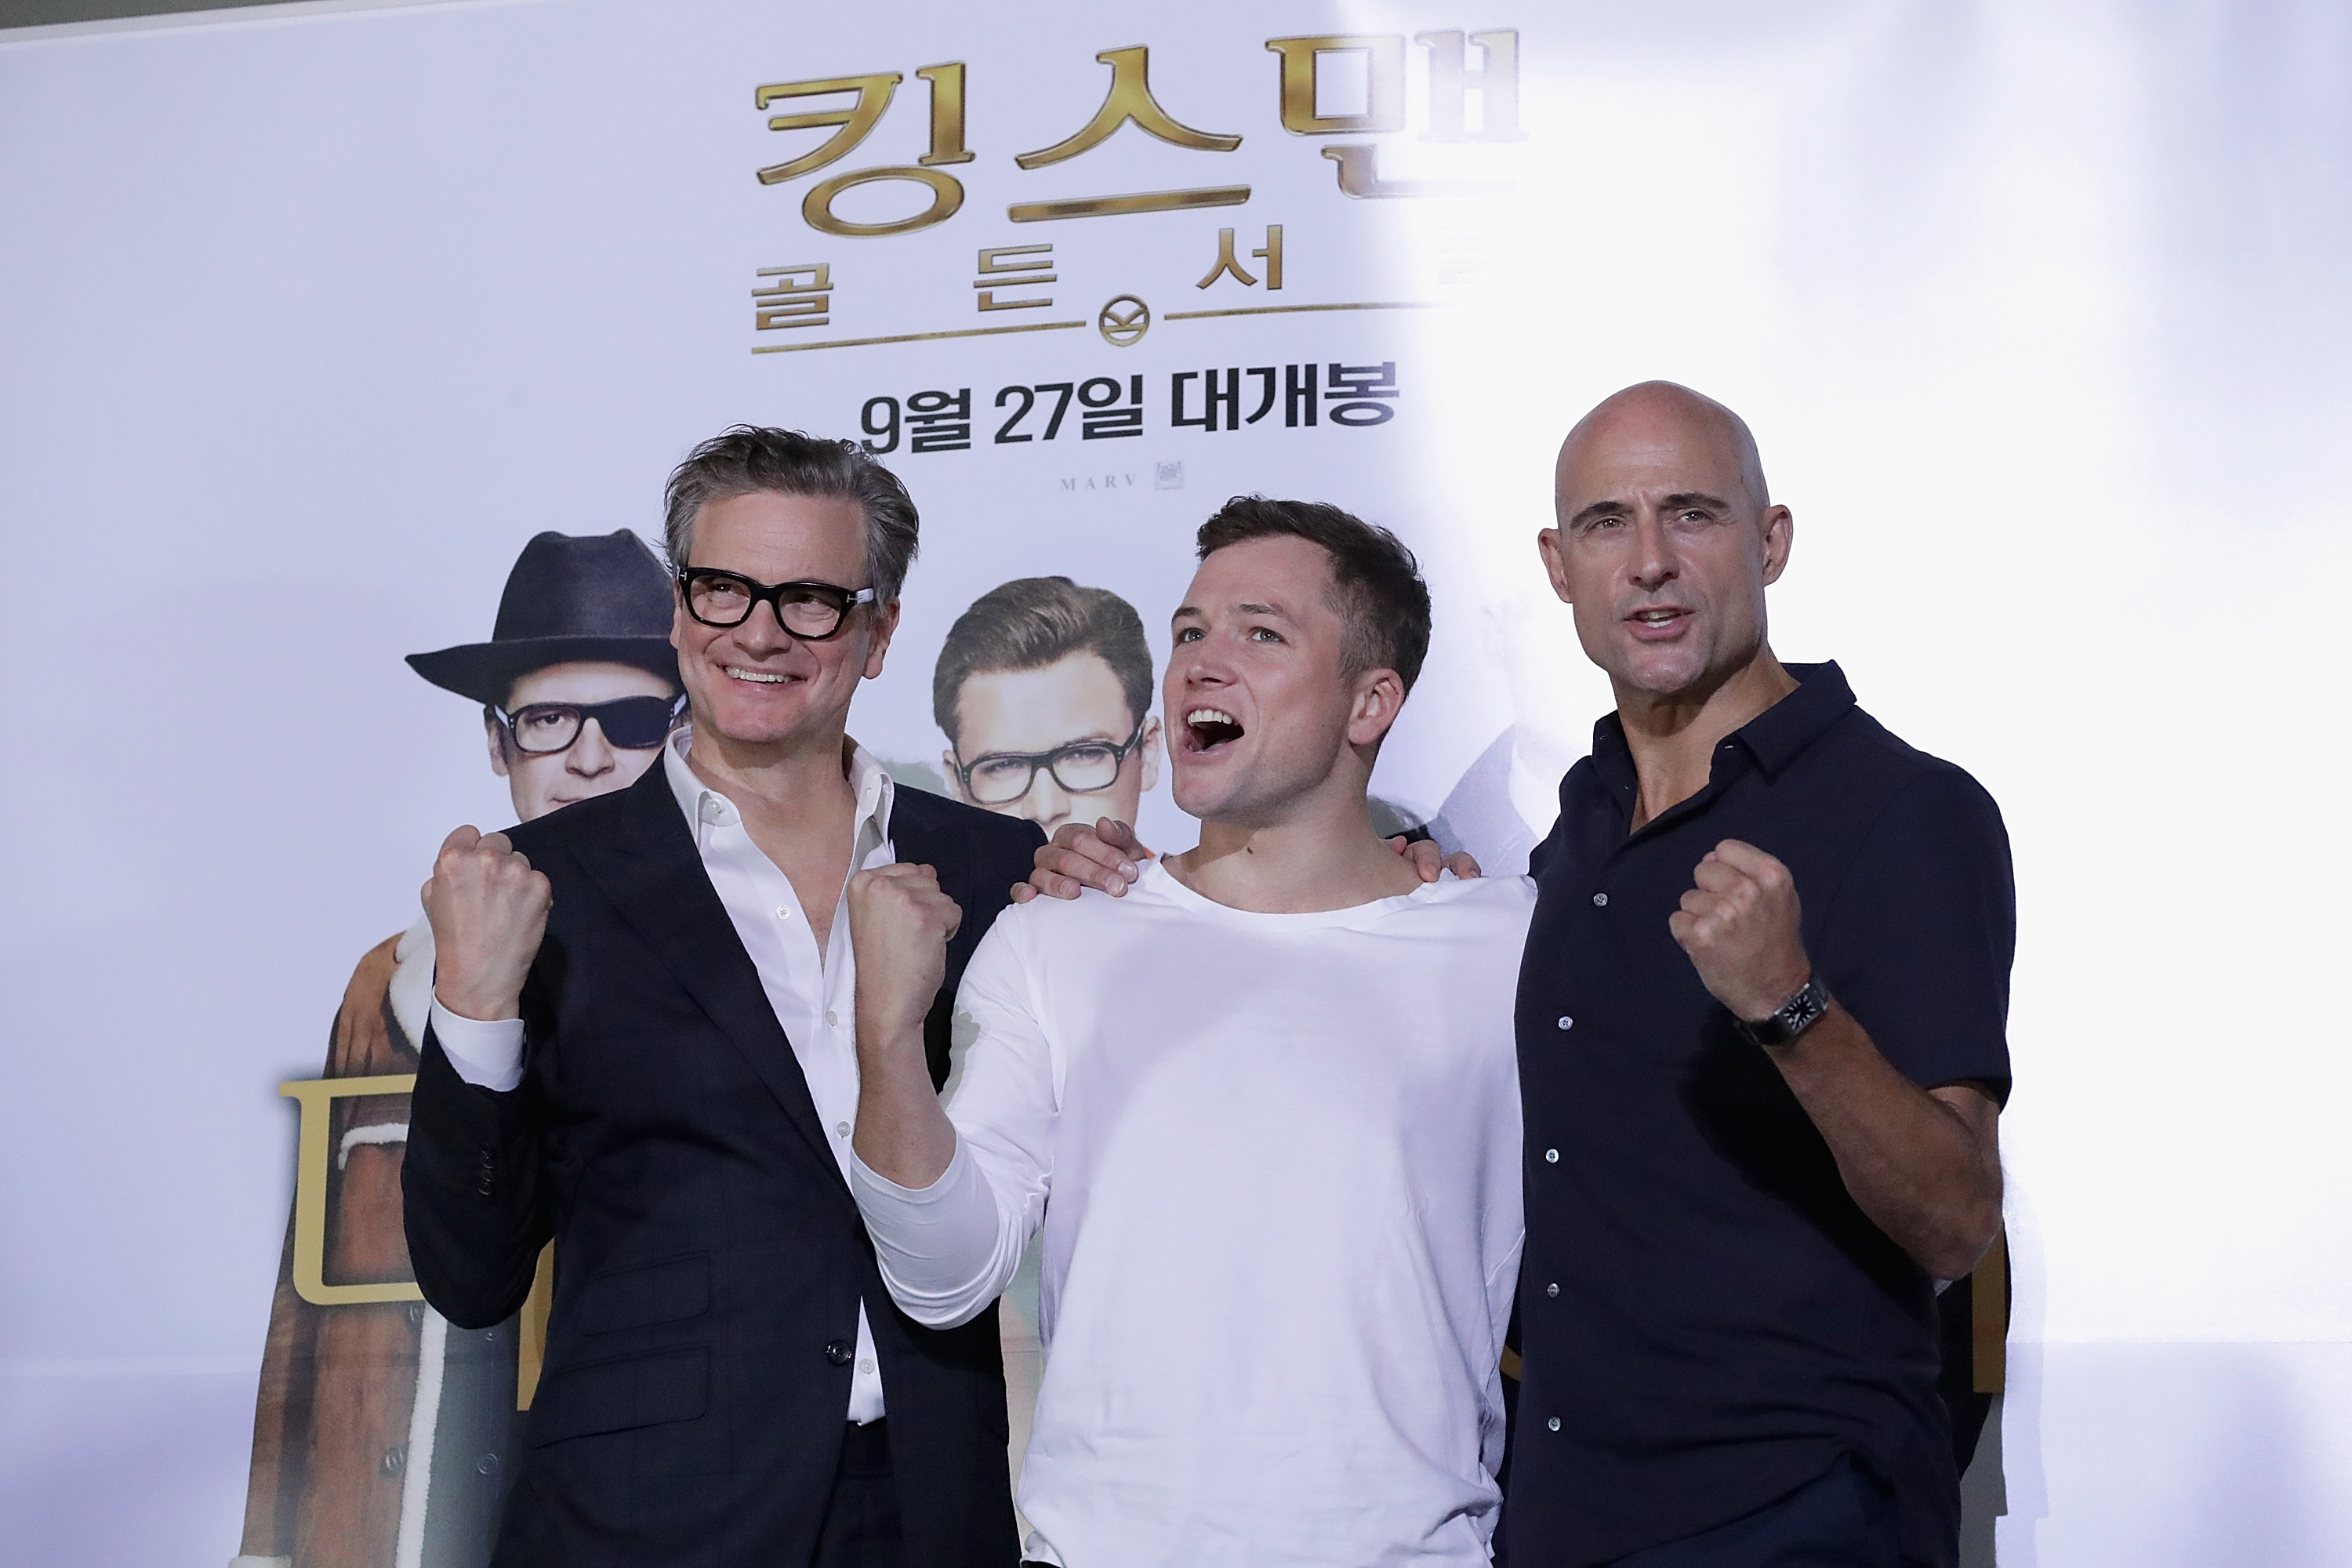 Colin Firth, Taron Egerton, Mark Strong